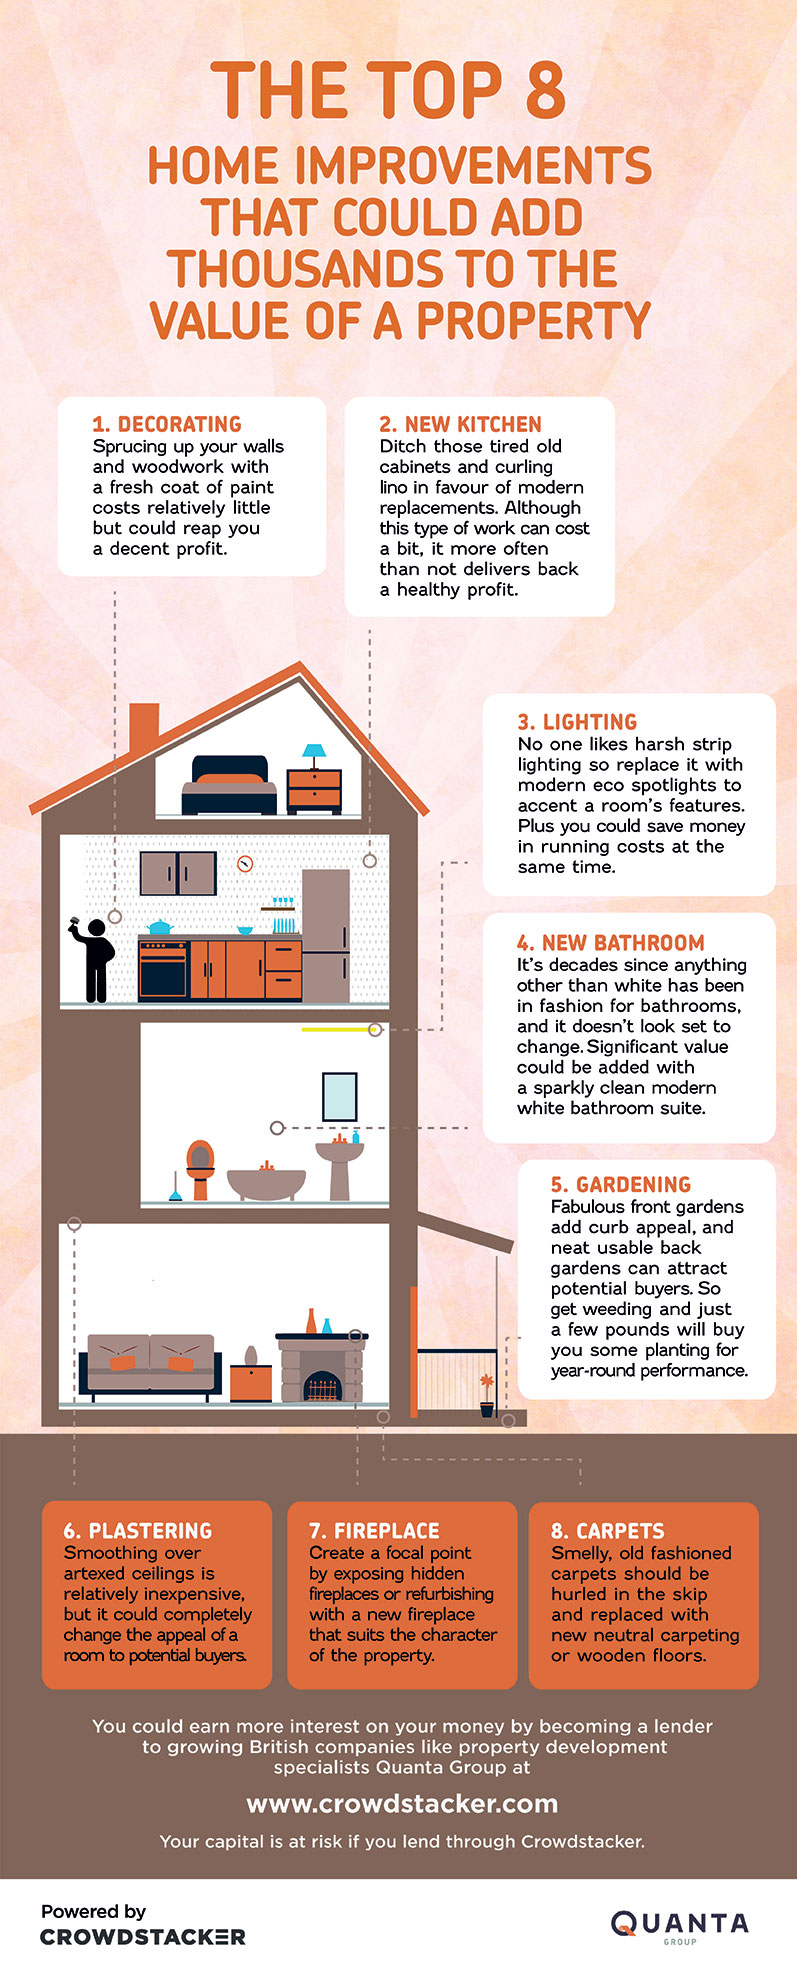 the-top-8-home-improvements-that-could-add-thousands-to-the-value-of-a-home_559a44cd8c831